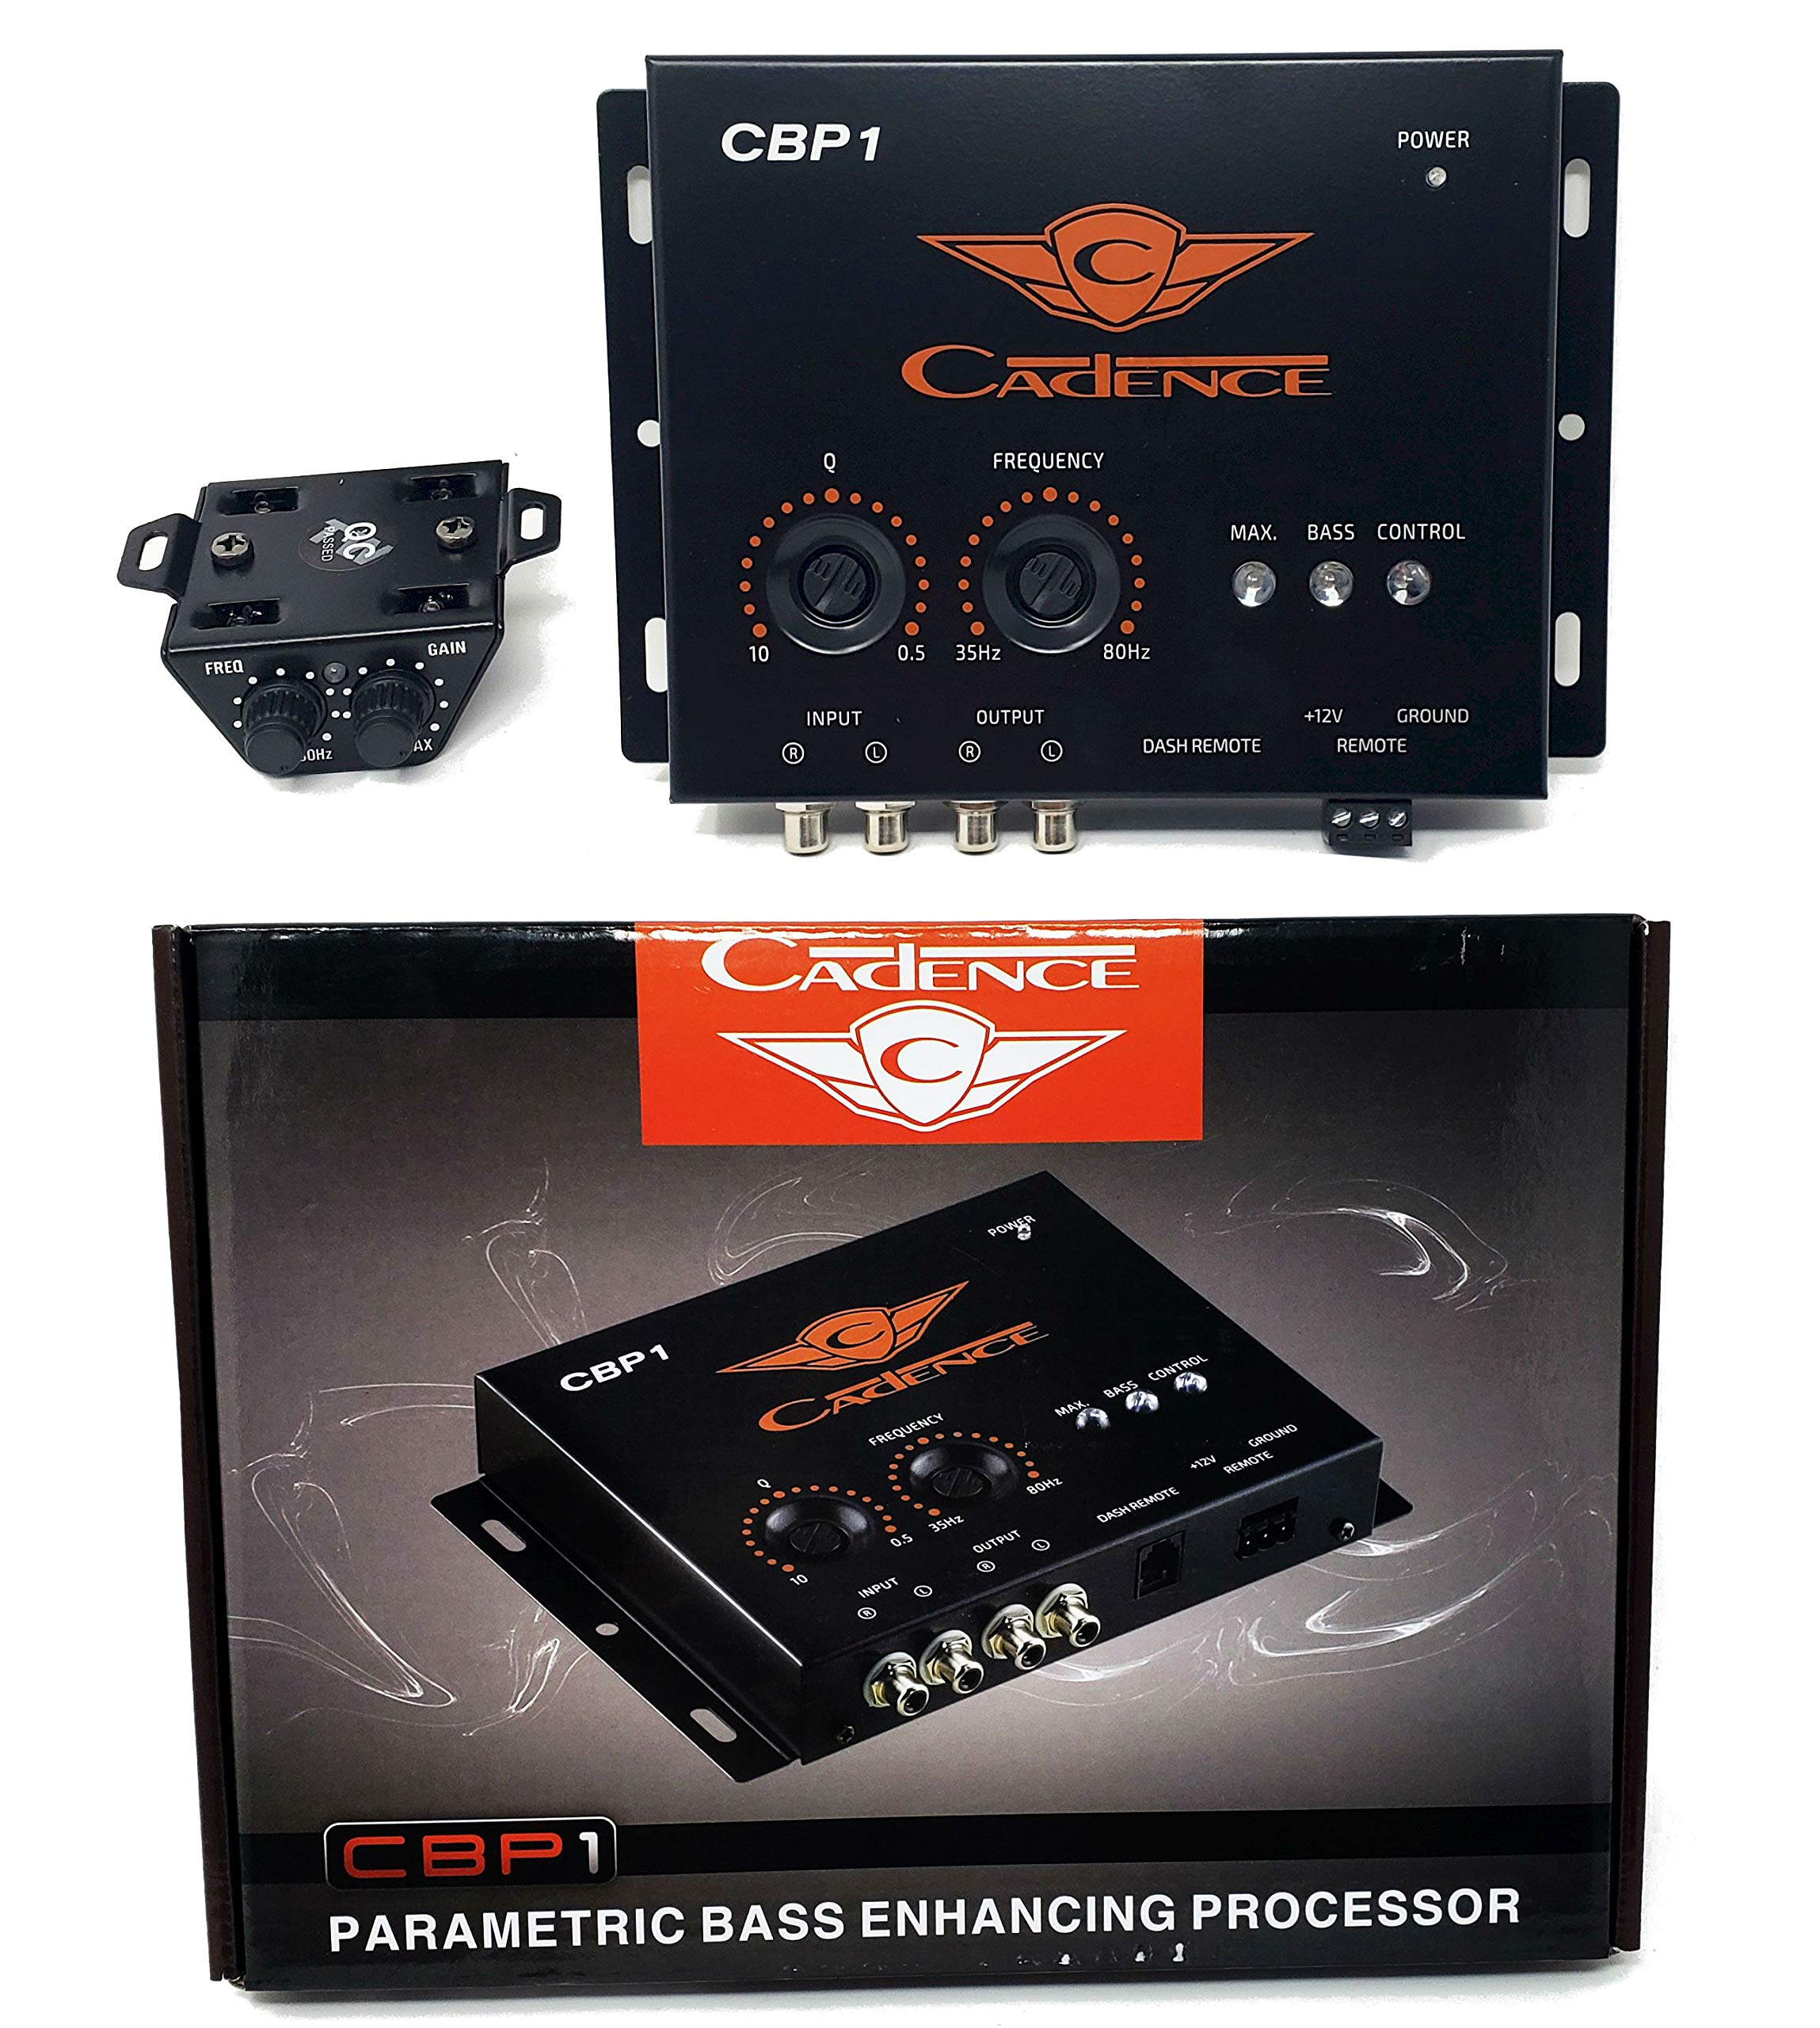 Cadence Acoustic CBP1 Digital Bass Processor BOOST RECONSTRUCTION PROCESSOR EPICENTER by Cadence Sound